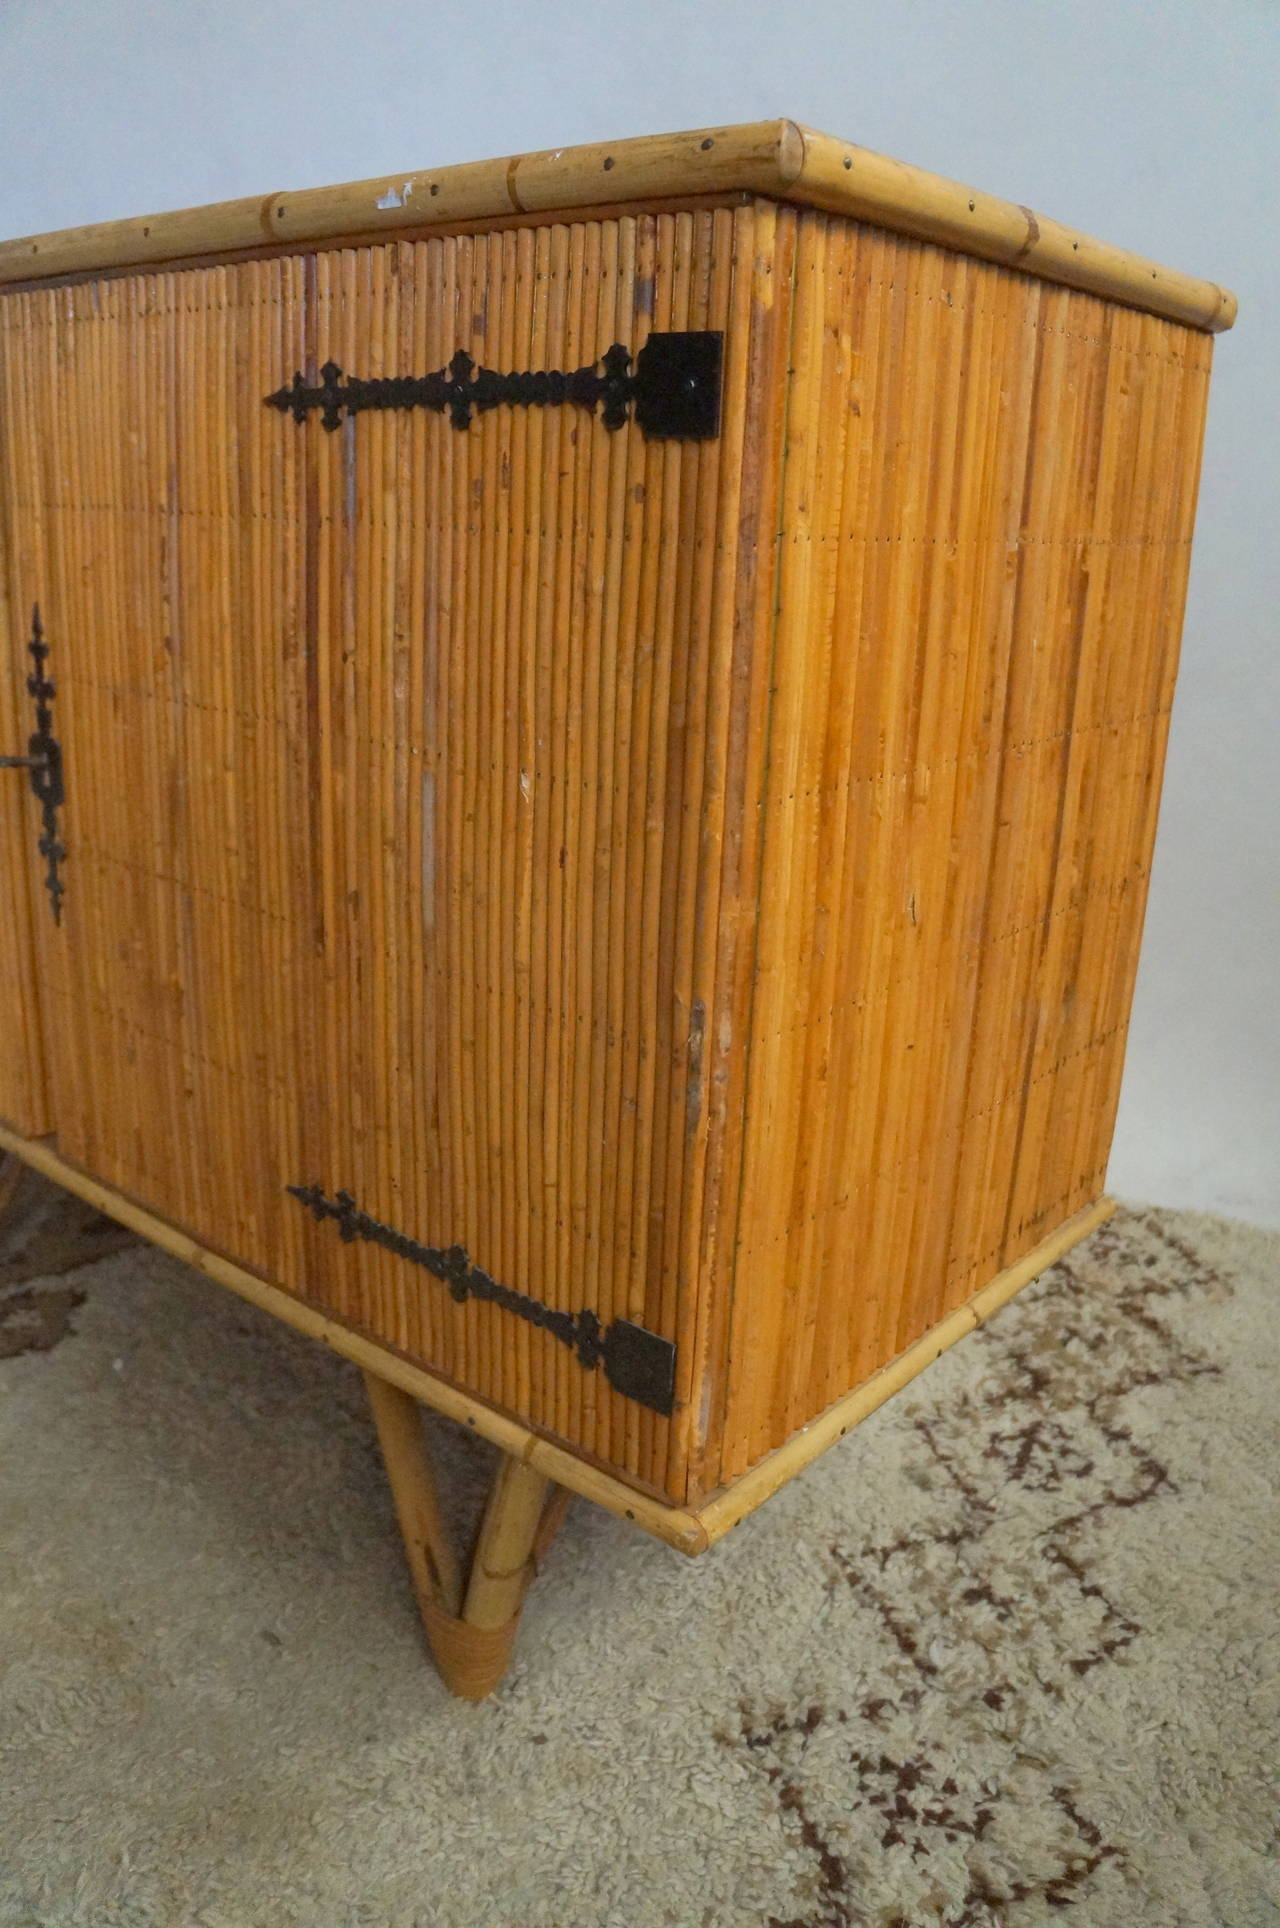 Bamboo cabinet for sale at 1stdibs for Bamboo kitchen cabinets for sale